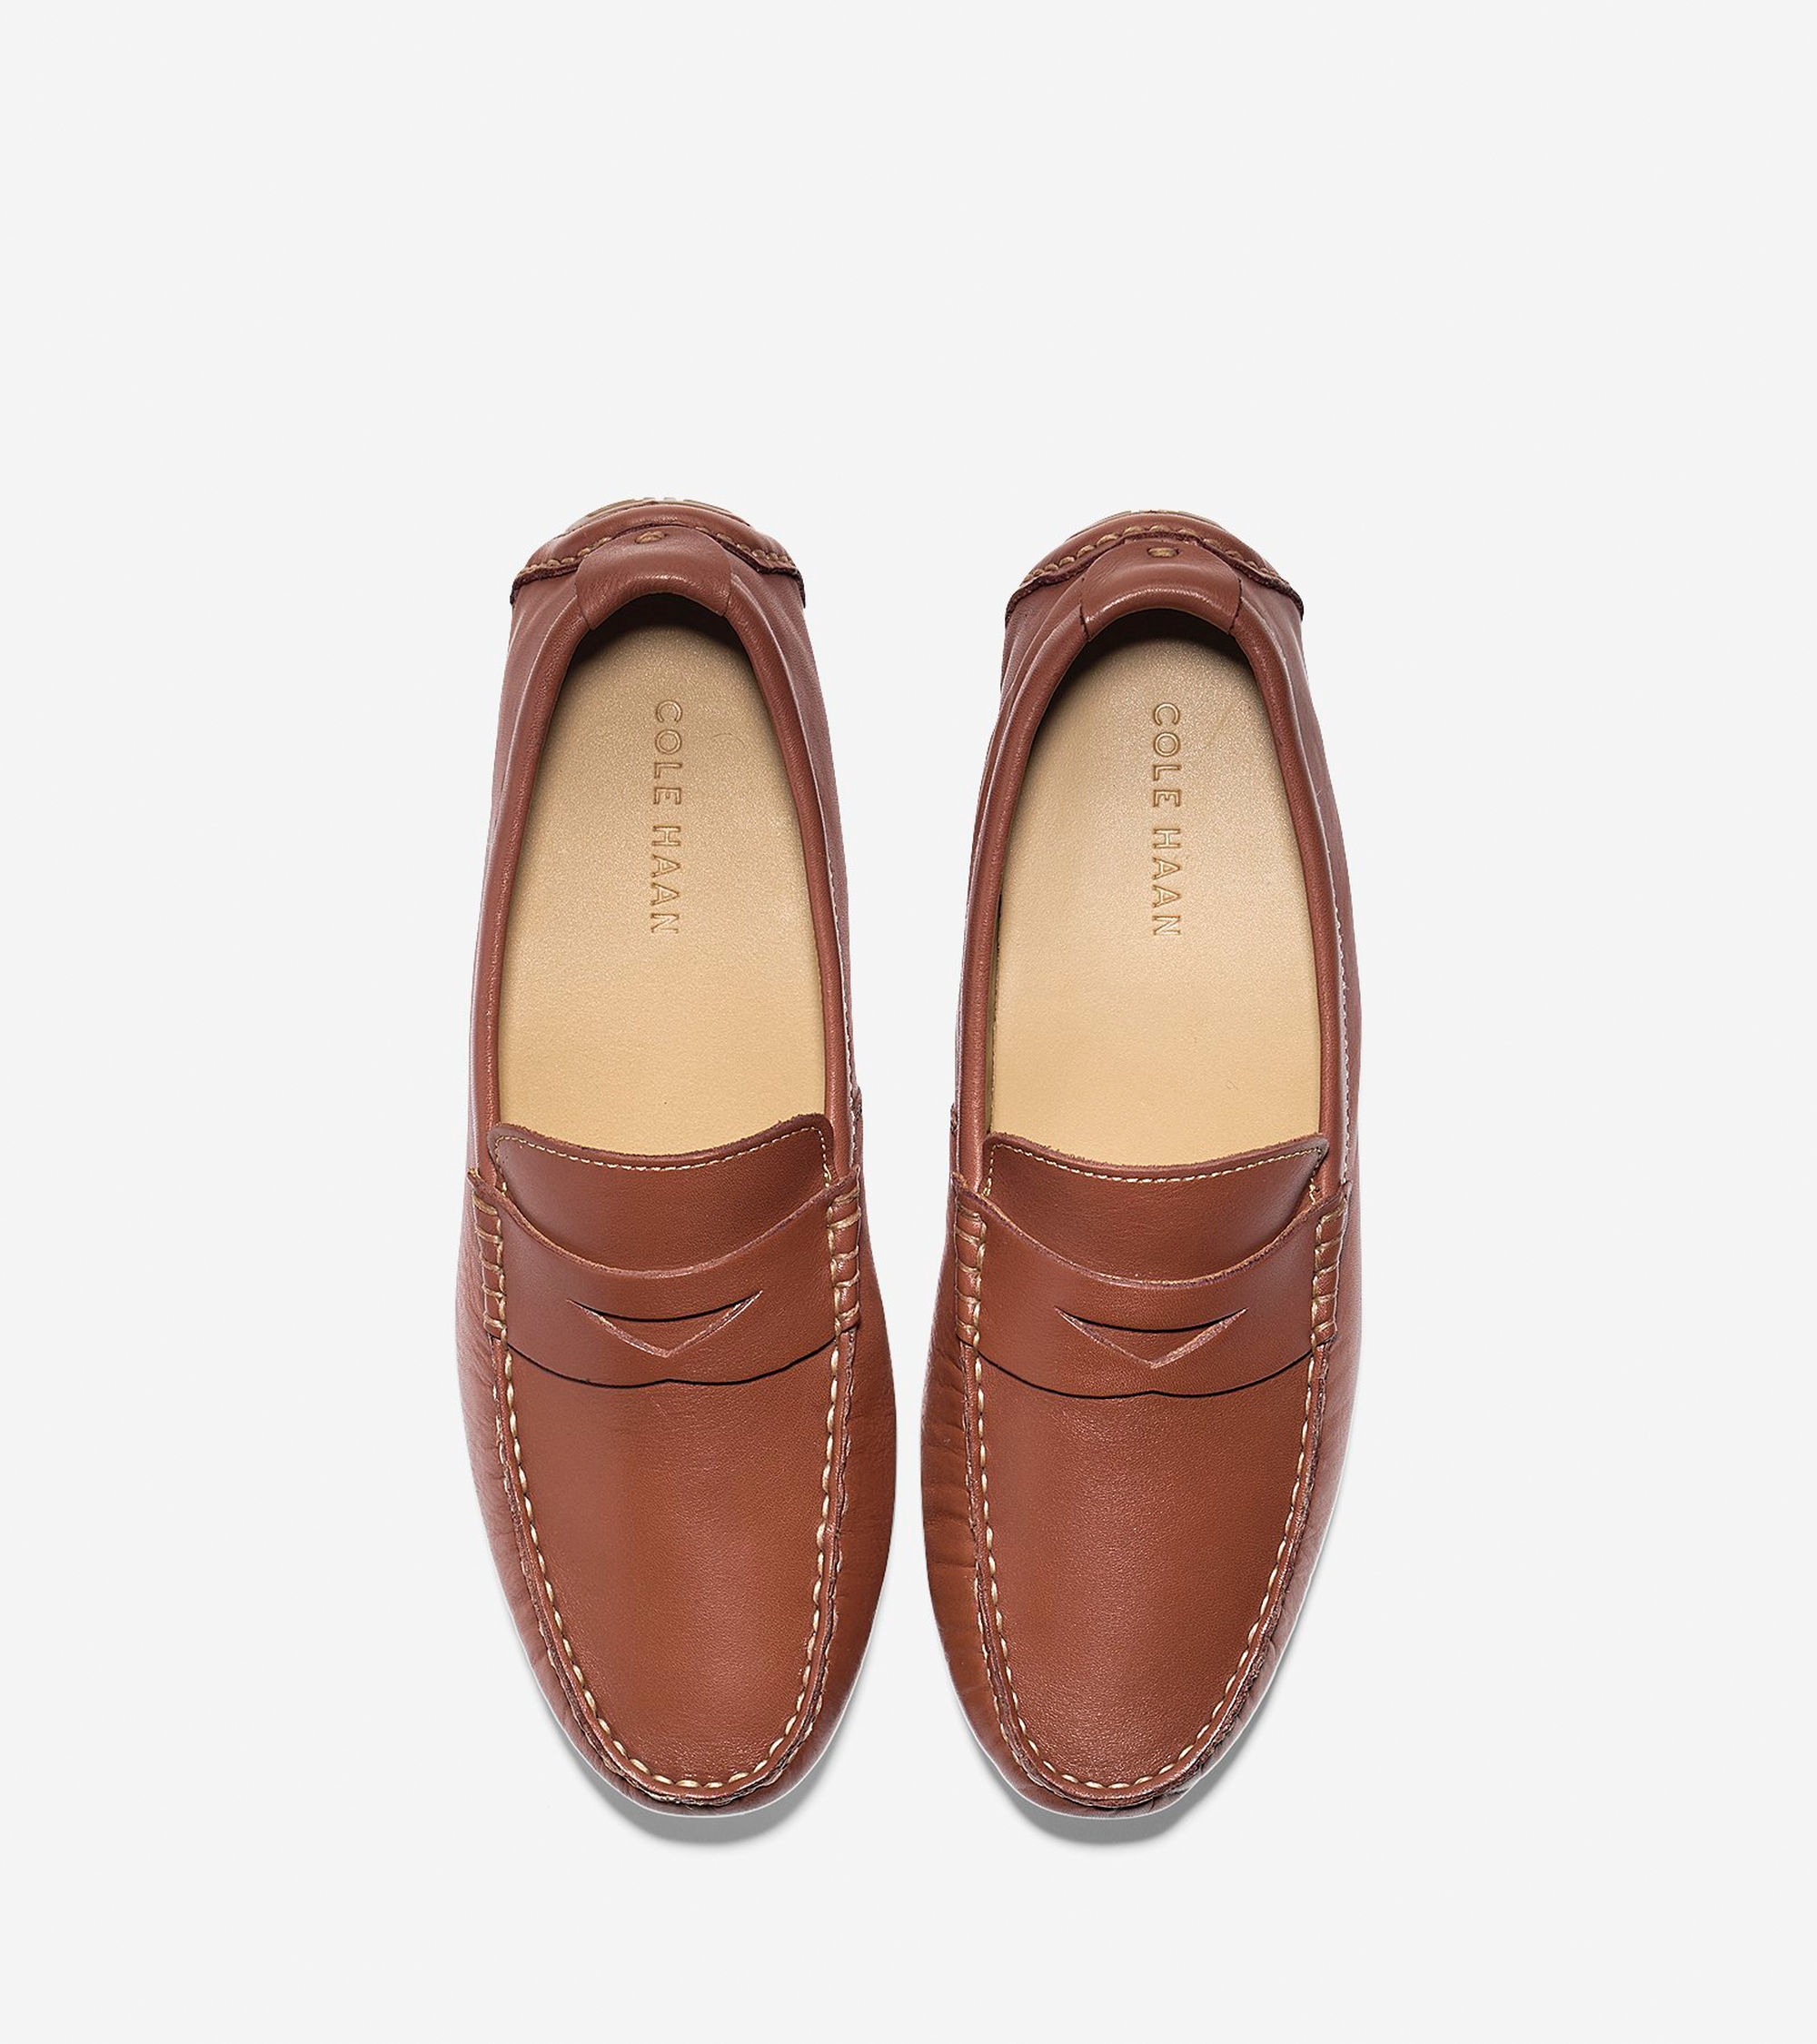 Lyst - Cole Haan Somerset Penny Loafer in Brown for Men